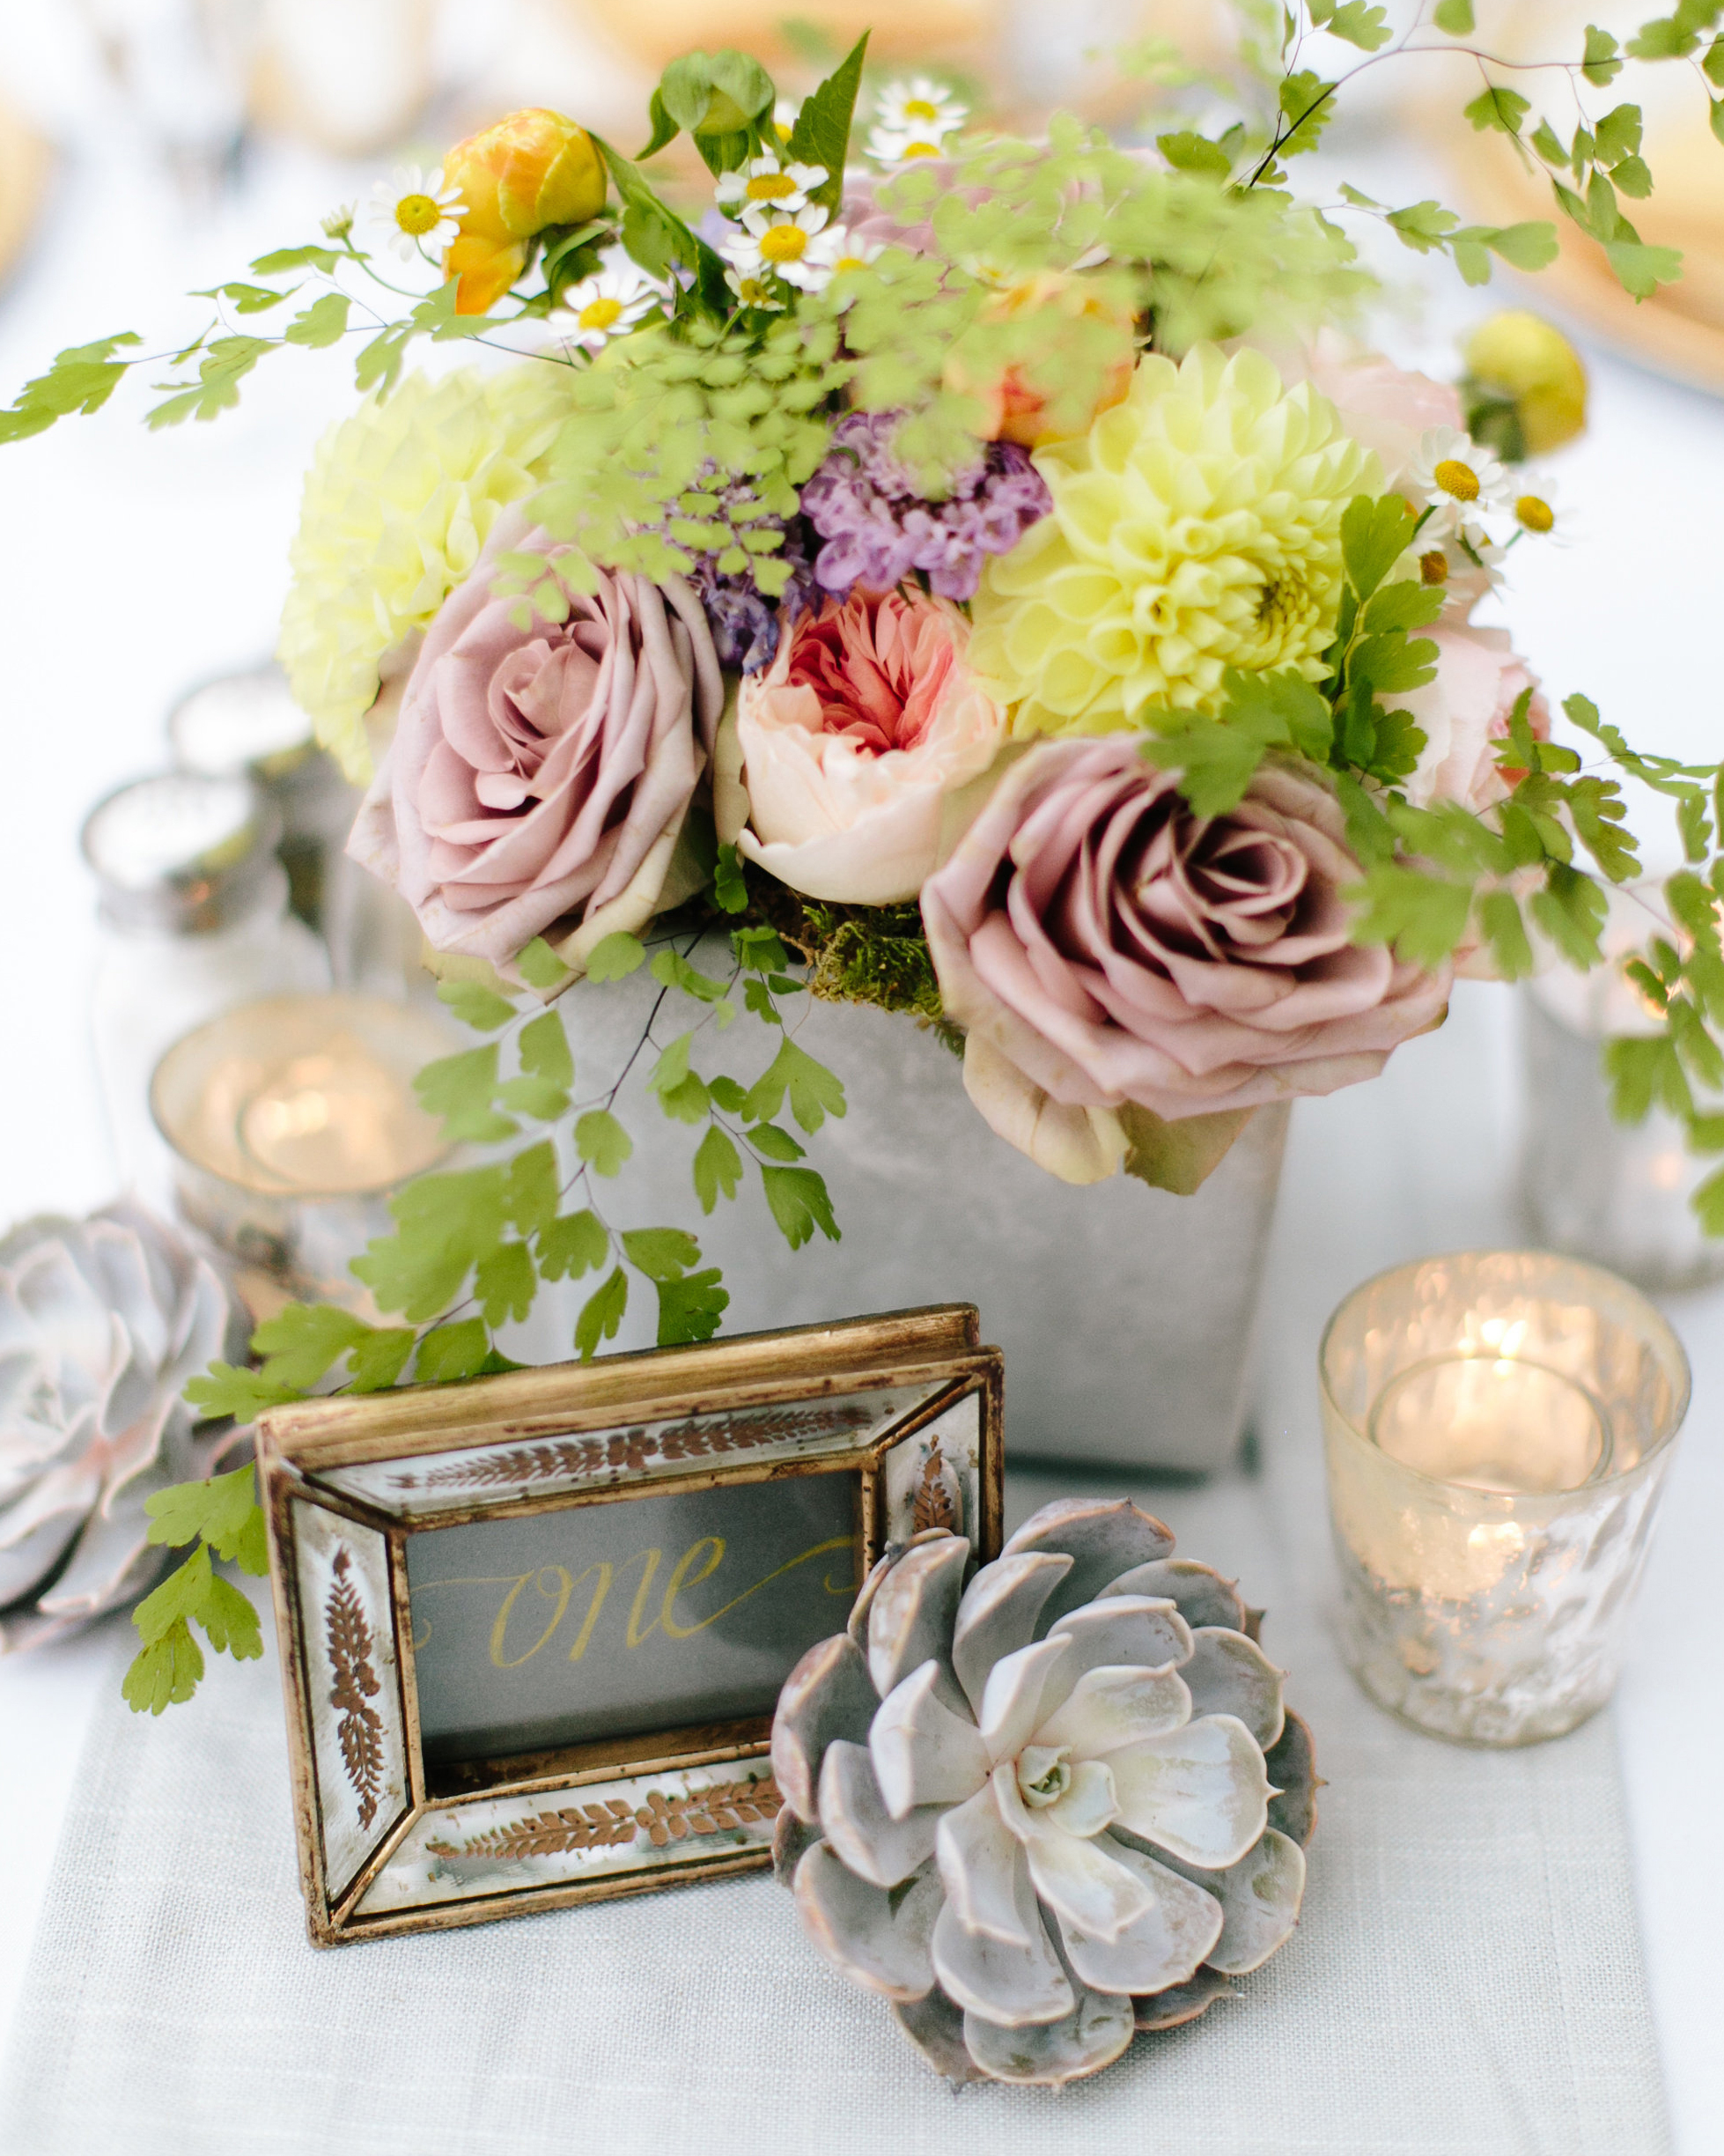 sandy-dwight-wedding-centerpiece-0514.jpg